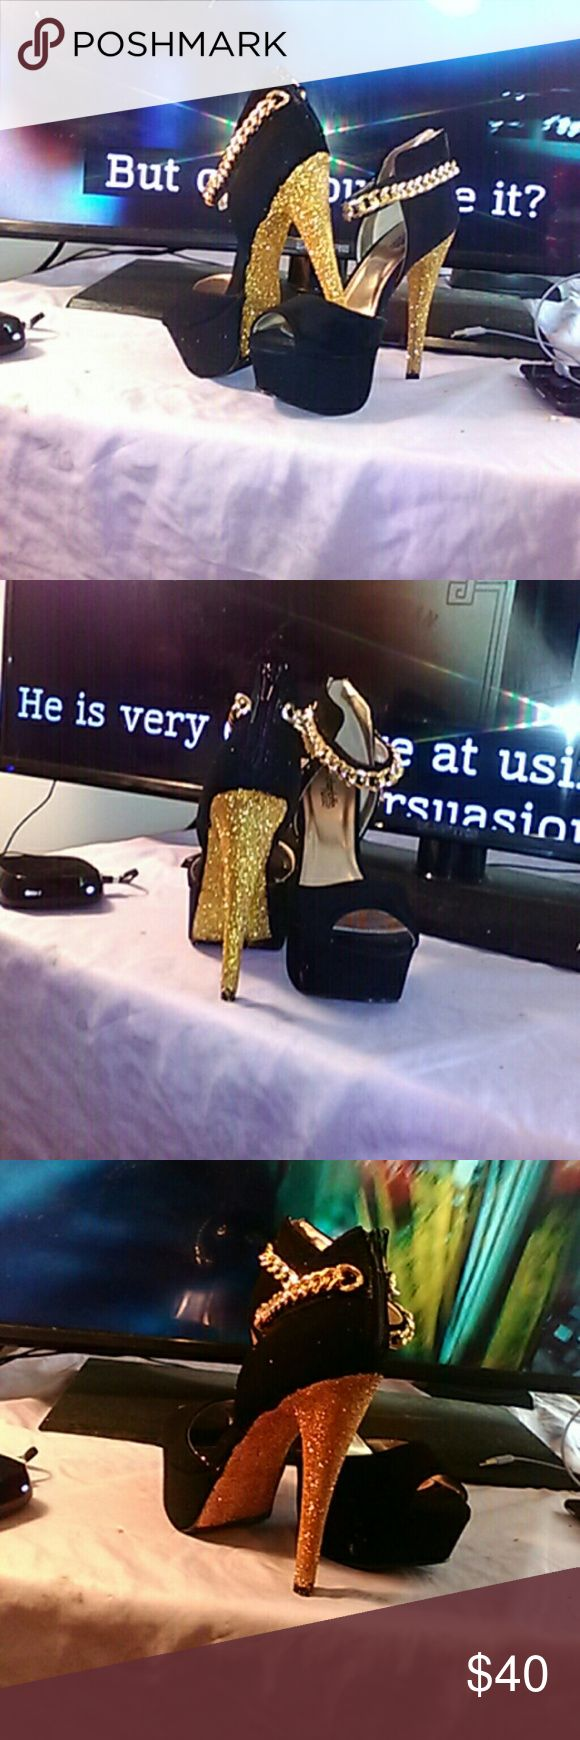 Suede and Gold Stiletto Heels Custom Made Suede and Gold Stiletto Heels Custom Made Shoes Platforms